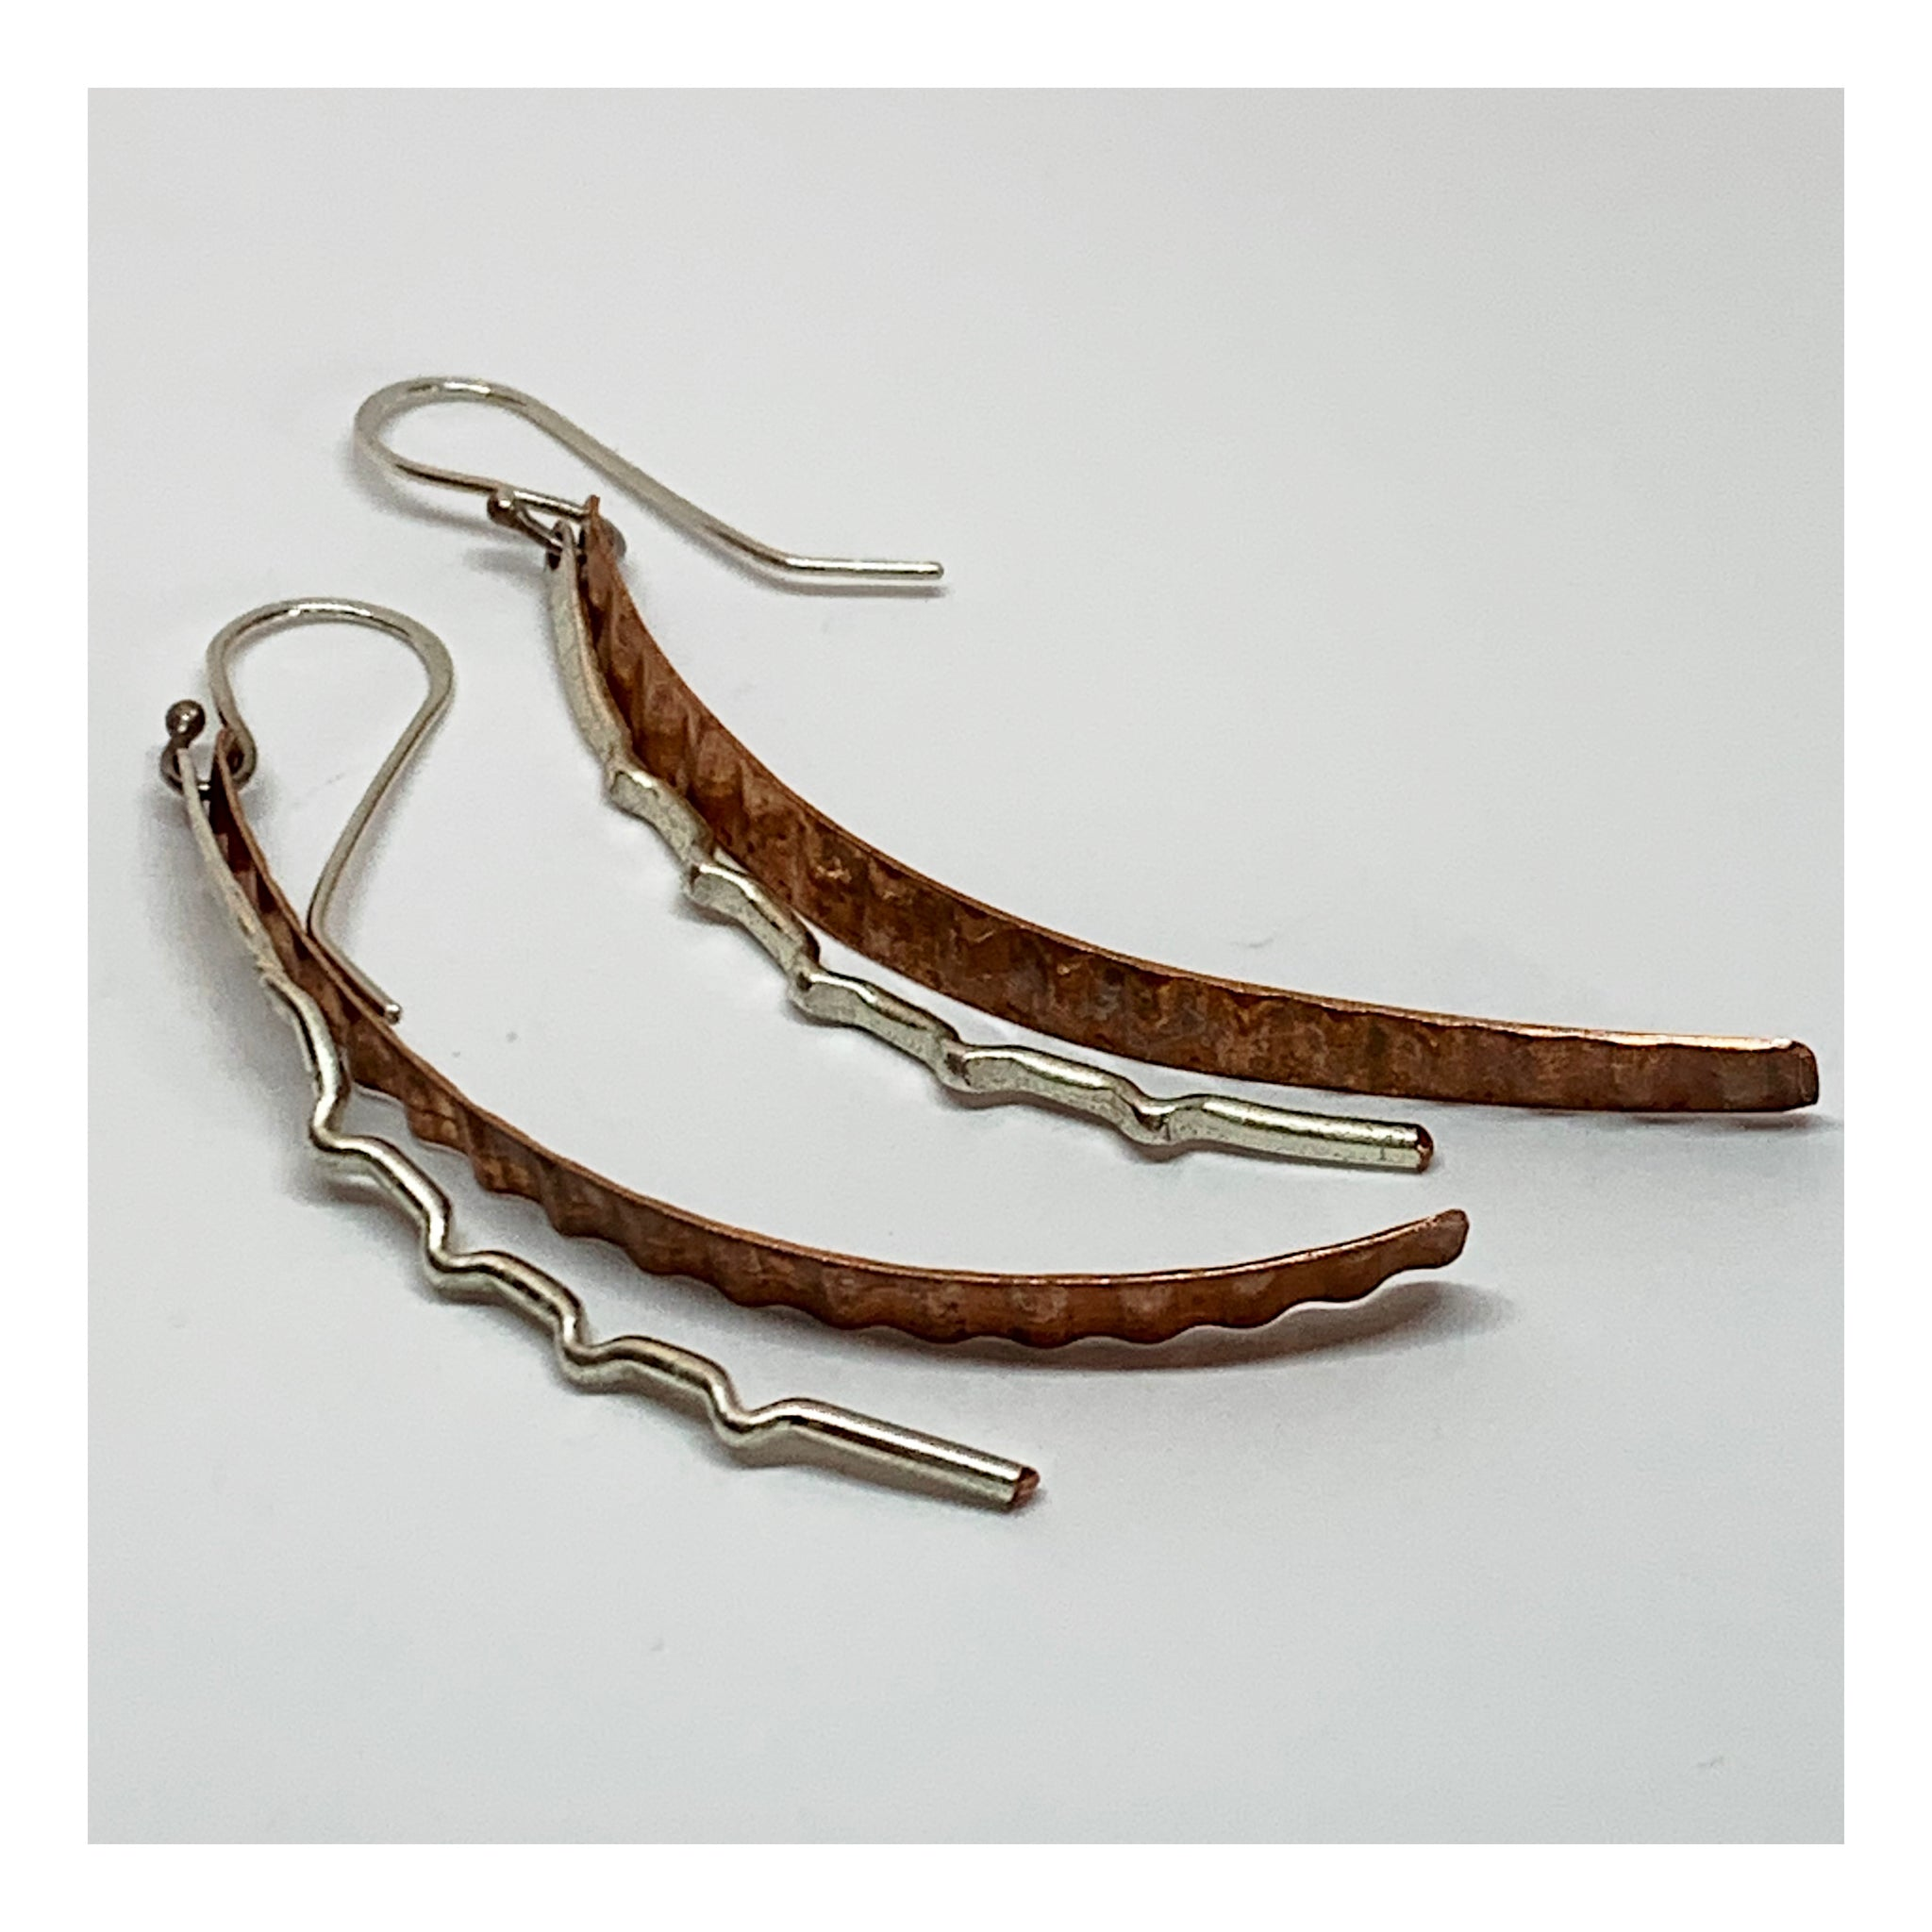 Long Organic Mixed Metals Earrings - Copper and Silver